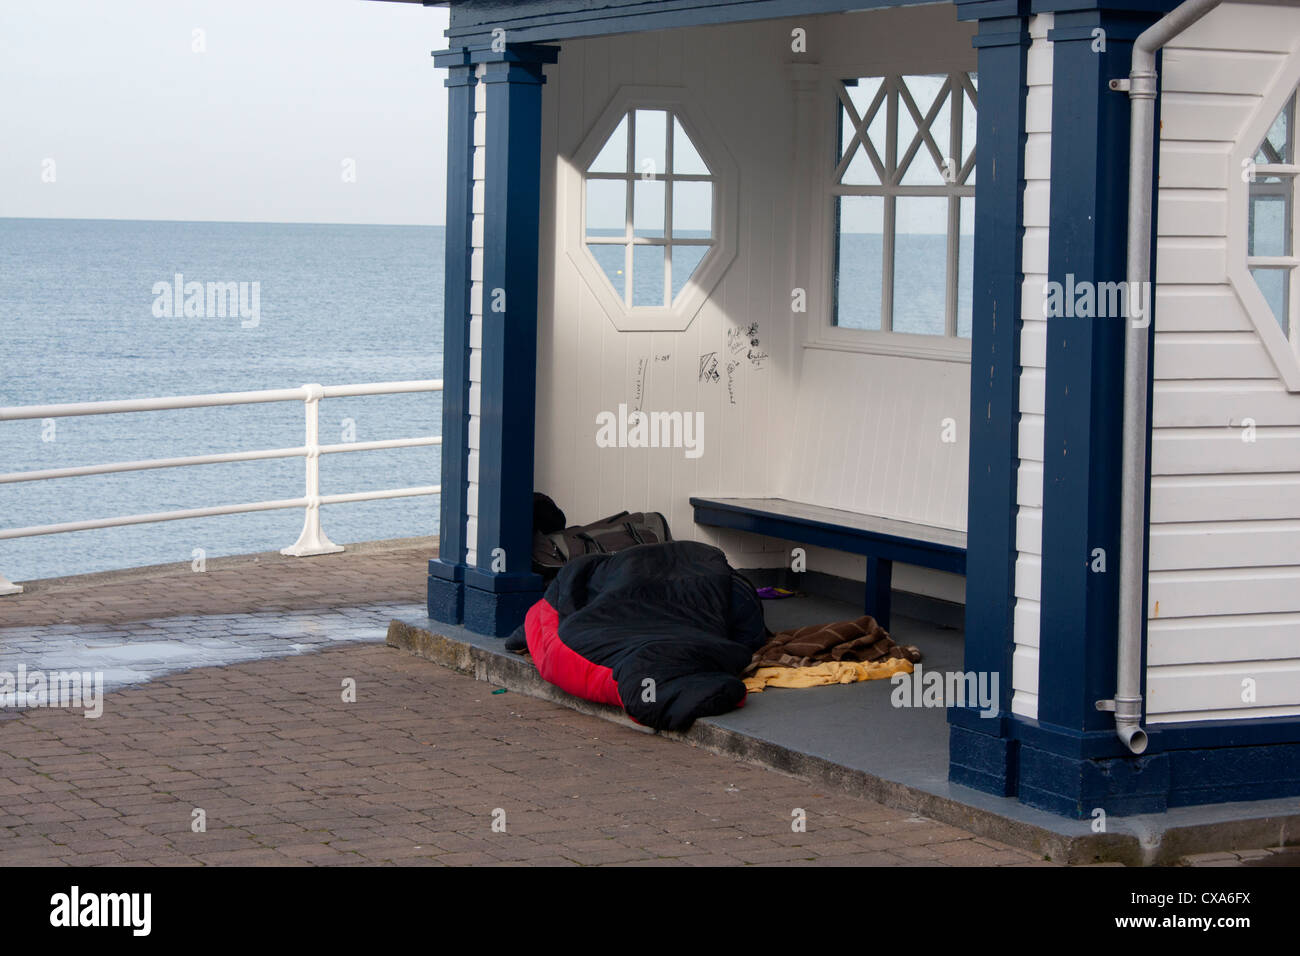 Homeless woman (hidden lying under sleeping bag) sleeping in shelter on promenade next to beach and sea Aberystwyth - Stock Image